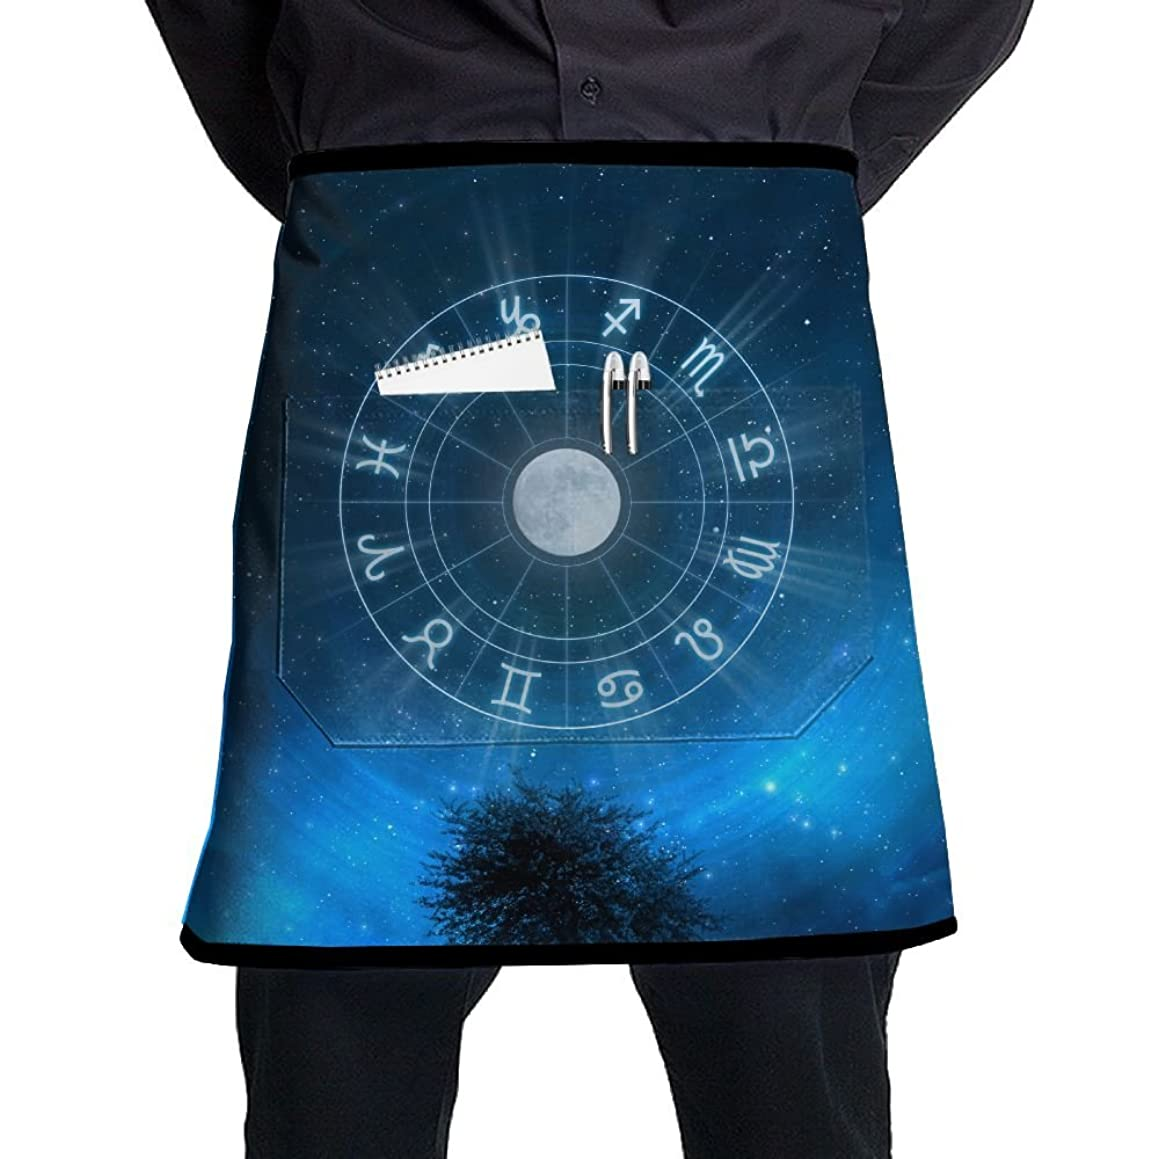 Zodiac Signs Men And Women Kitchen 3D Apron For Cooking, Baking, Crafting, Gardening, BBQ-Navy & Cream